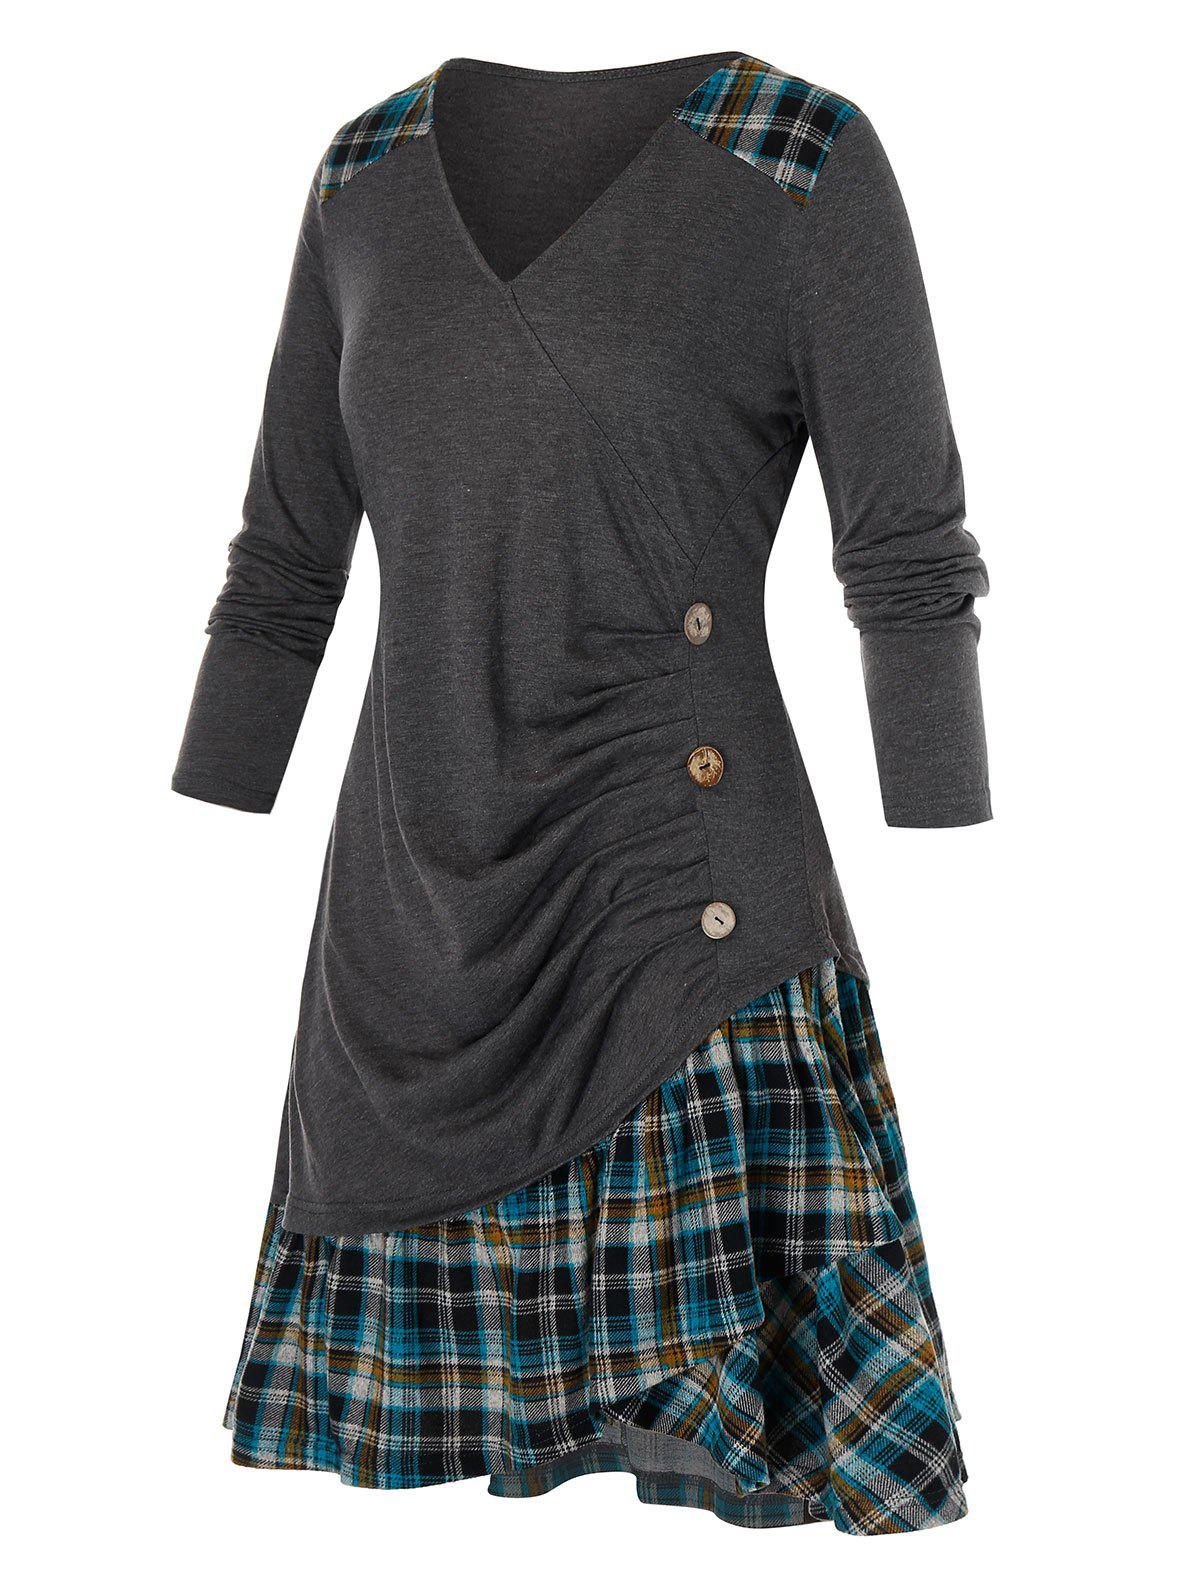 Plus Size Plaid Flounce Ruched Long Sleeve Tee - DARK GRAY 3X